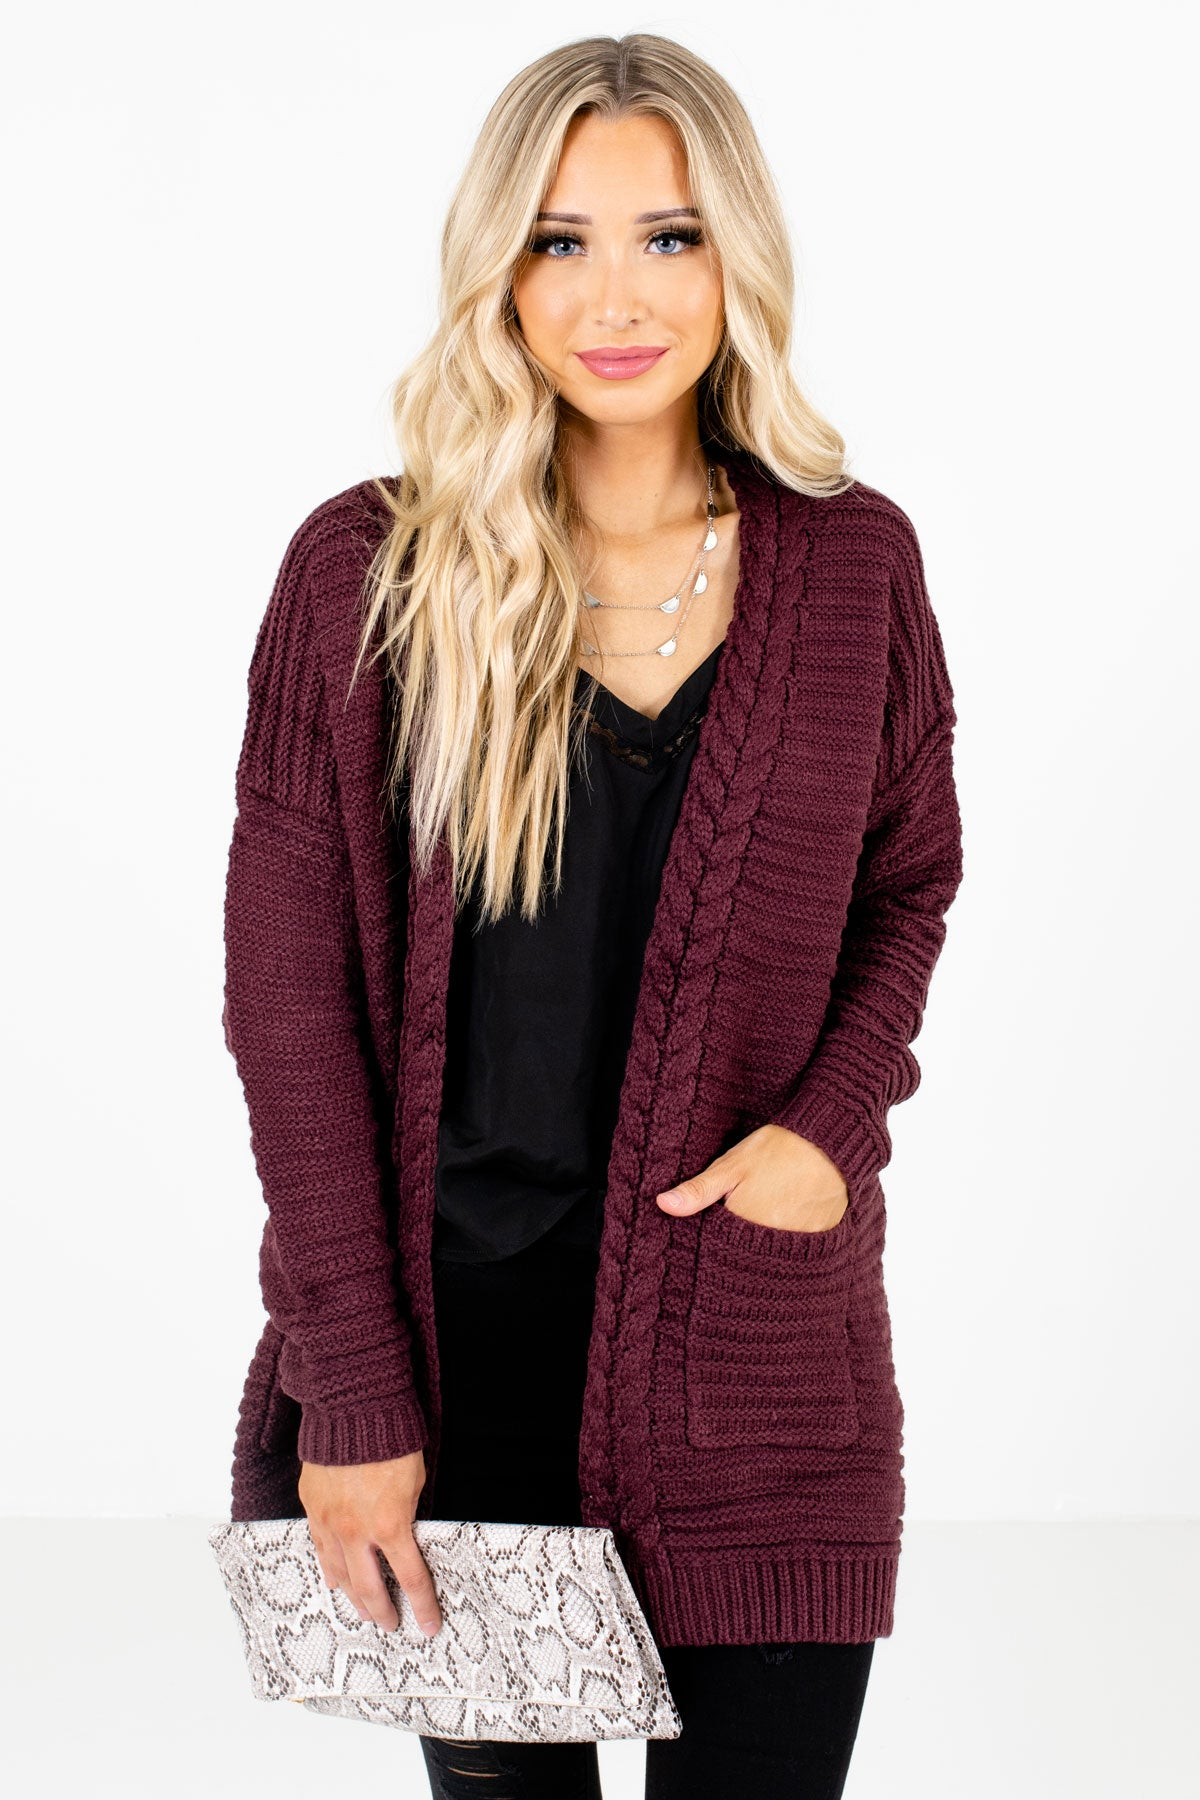 Purple High-Quality Knit Material Boutique Cardigans for Women